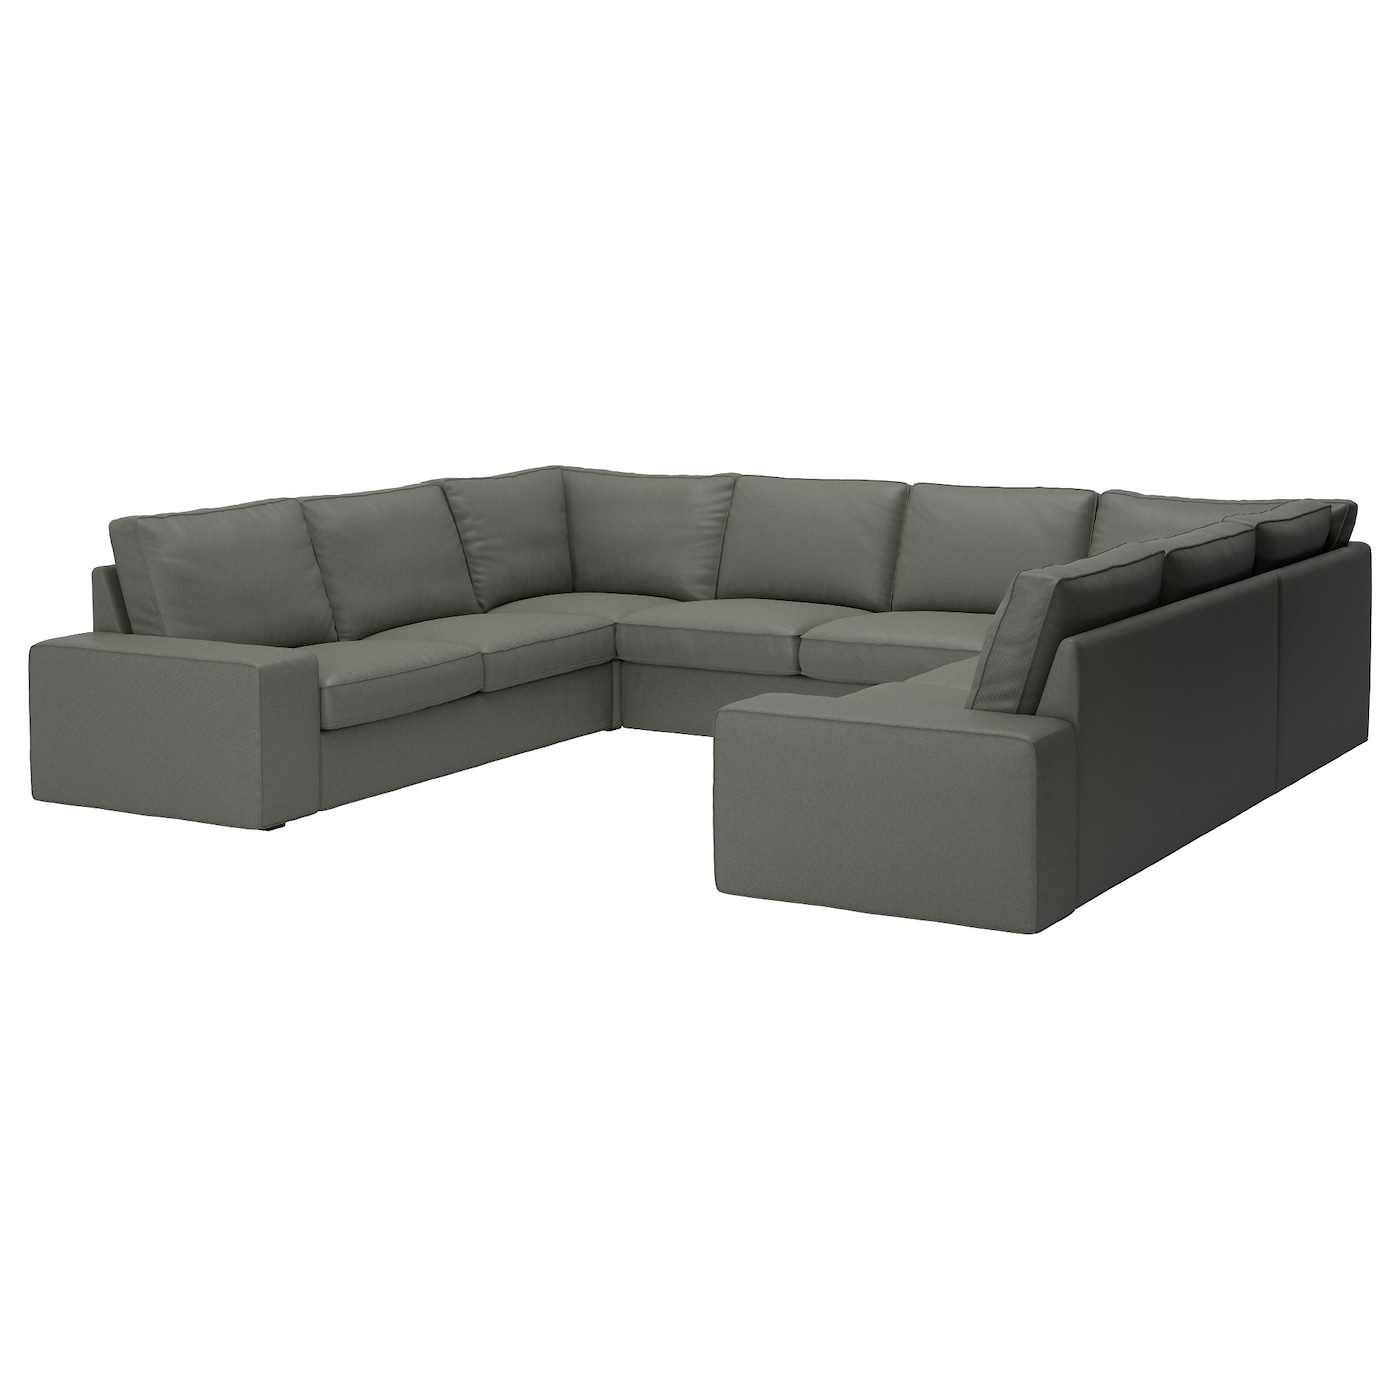 kivik sofa u shaped 8 seater borred grey green ikea. Black Bedroom Furniture Sets. Home Design Ideas